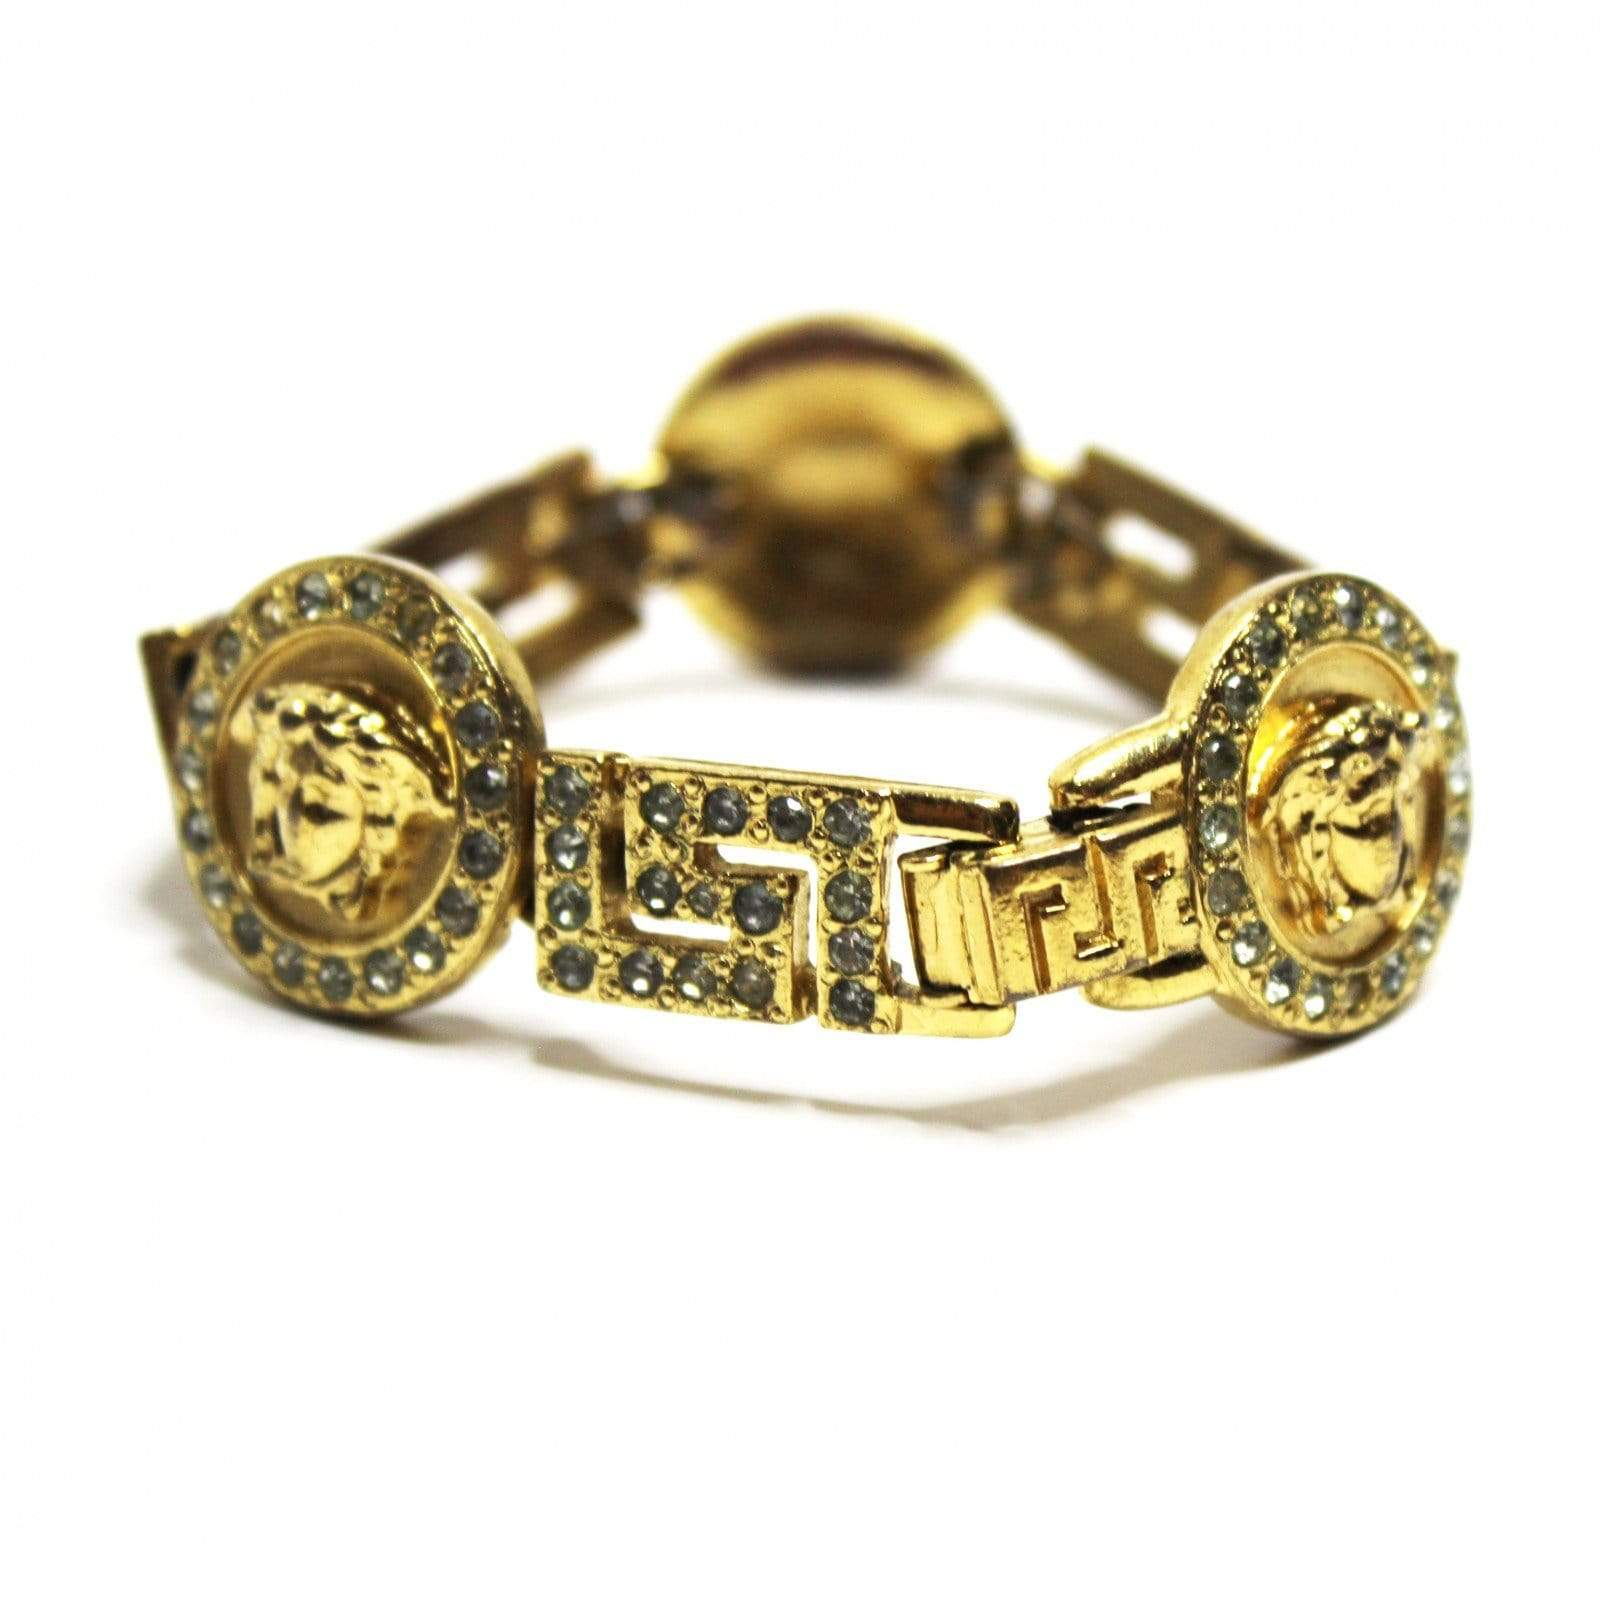 Vintage Versace Greek Key & Medusa Head Bracelet with Crystal Accents RSTKD Vintage